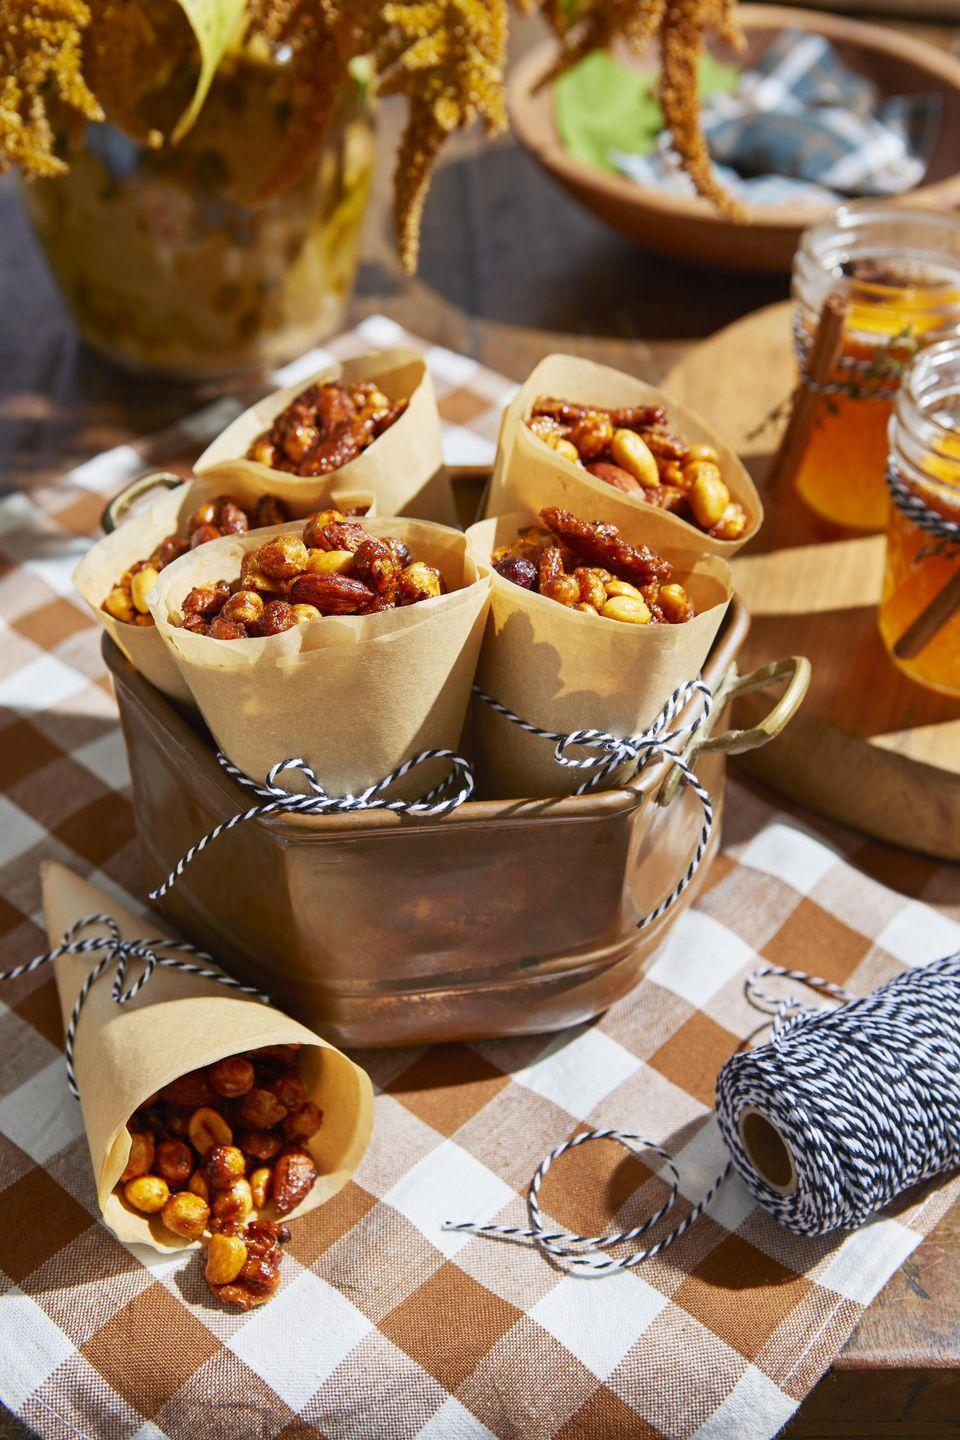 "<p>Crunchy chickpeas and sesame sticks, and a variety of spices like Aleppo pepper and lemon zest turn a handful of nuts into an irresistible snack. To keep it vegan swap the butter out for coconut oil or your <a href=""https://www.amazon.com/Earth-Balance-Buttery-Non-GMO-Verified/dp/B00B04NK2A/?tag=syn-yahoo-20&ascsubtag=%5Bartid%7C10050.g.35120802%5Bsrc%7Cyahoo-us"" rel=""nofollow noopener"" target=""_blank"" data-ylk=""slk:favorite butter alternative"" class=""link rapid-noclick-resp"">favorite butter alternative</a>, and use maple syrup in place of the honey.</p><p><strong><a href=""https://www.countryliving.com/food-drinks/a34945277/spicy-n-sweet-snack-mix-recipe/"" rel=""nofollow noopener"" target=""_blank"" data-ylk=""slk:Get the recipe"" class=""link rapid-noclick-resp"">Get the recipe</a>.</strong></p><p><a class=""link rapid-noclick-resp"" href=""https://www.amazon.com/Nordic-Ware-Natural-Aluminum-Commercial/dp/B0049C2S32/?tag=syn-yahoo-20&ascsubtag=%5Bartid%7C10050.g.35120802%5Bsrc%7Cyahoo-us"" rel=""nofollow noopener"" target=""_blank"" data-ylk=""slk:SHOP BAKING SHEETS"">SHOP BAKING SHEETS</a></p>"